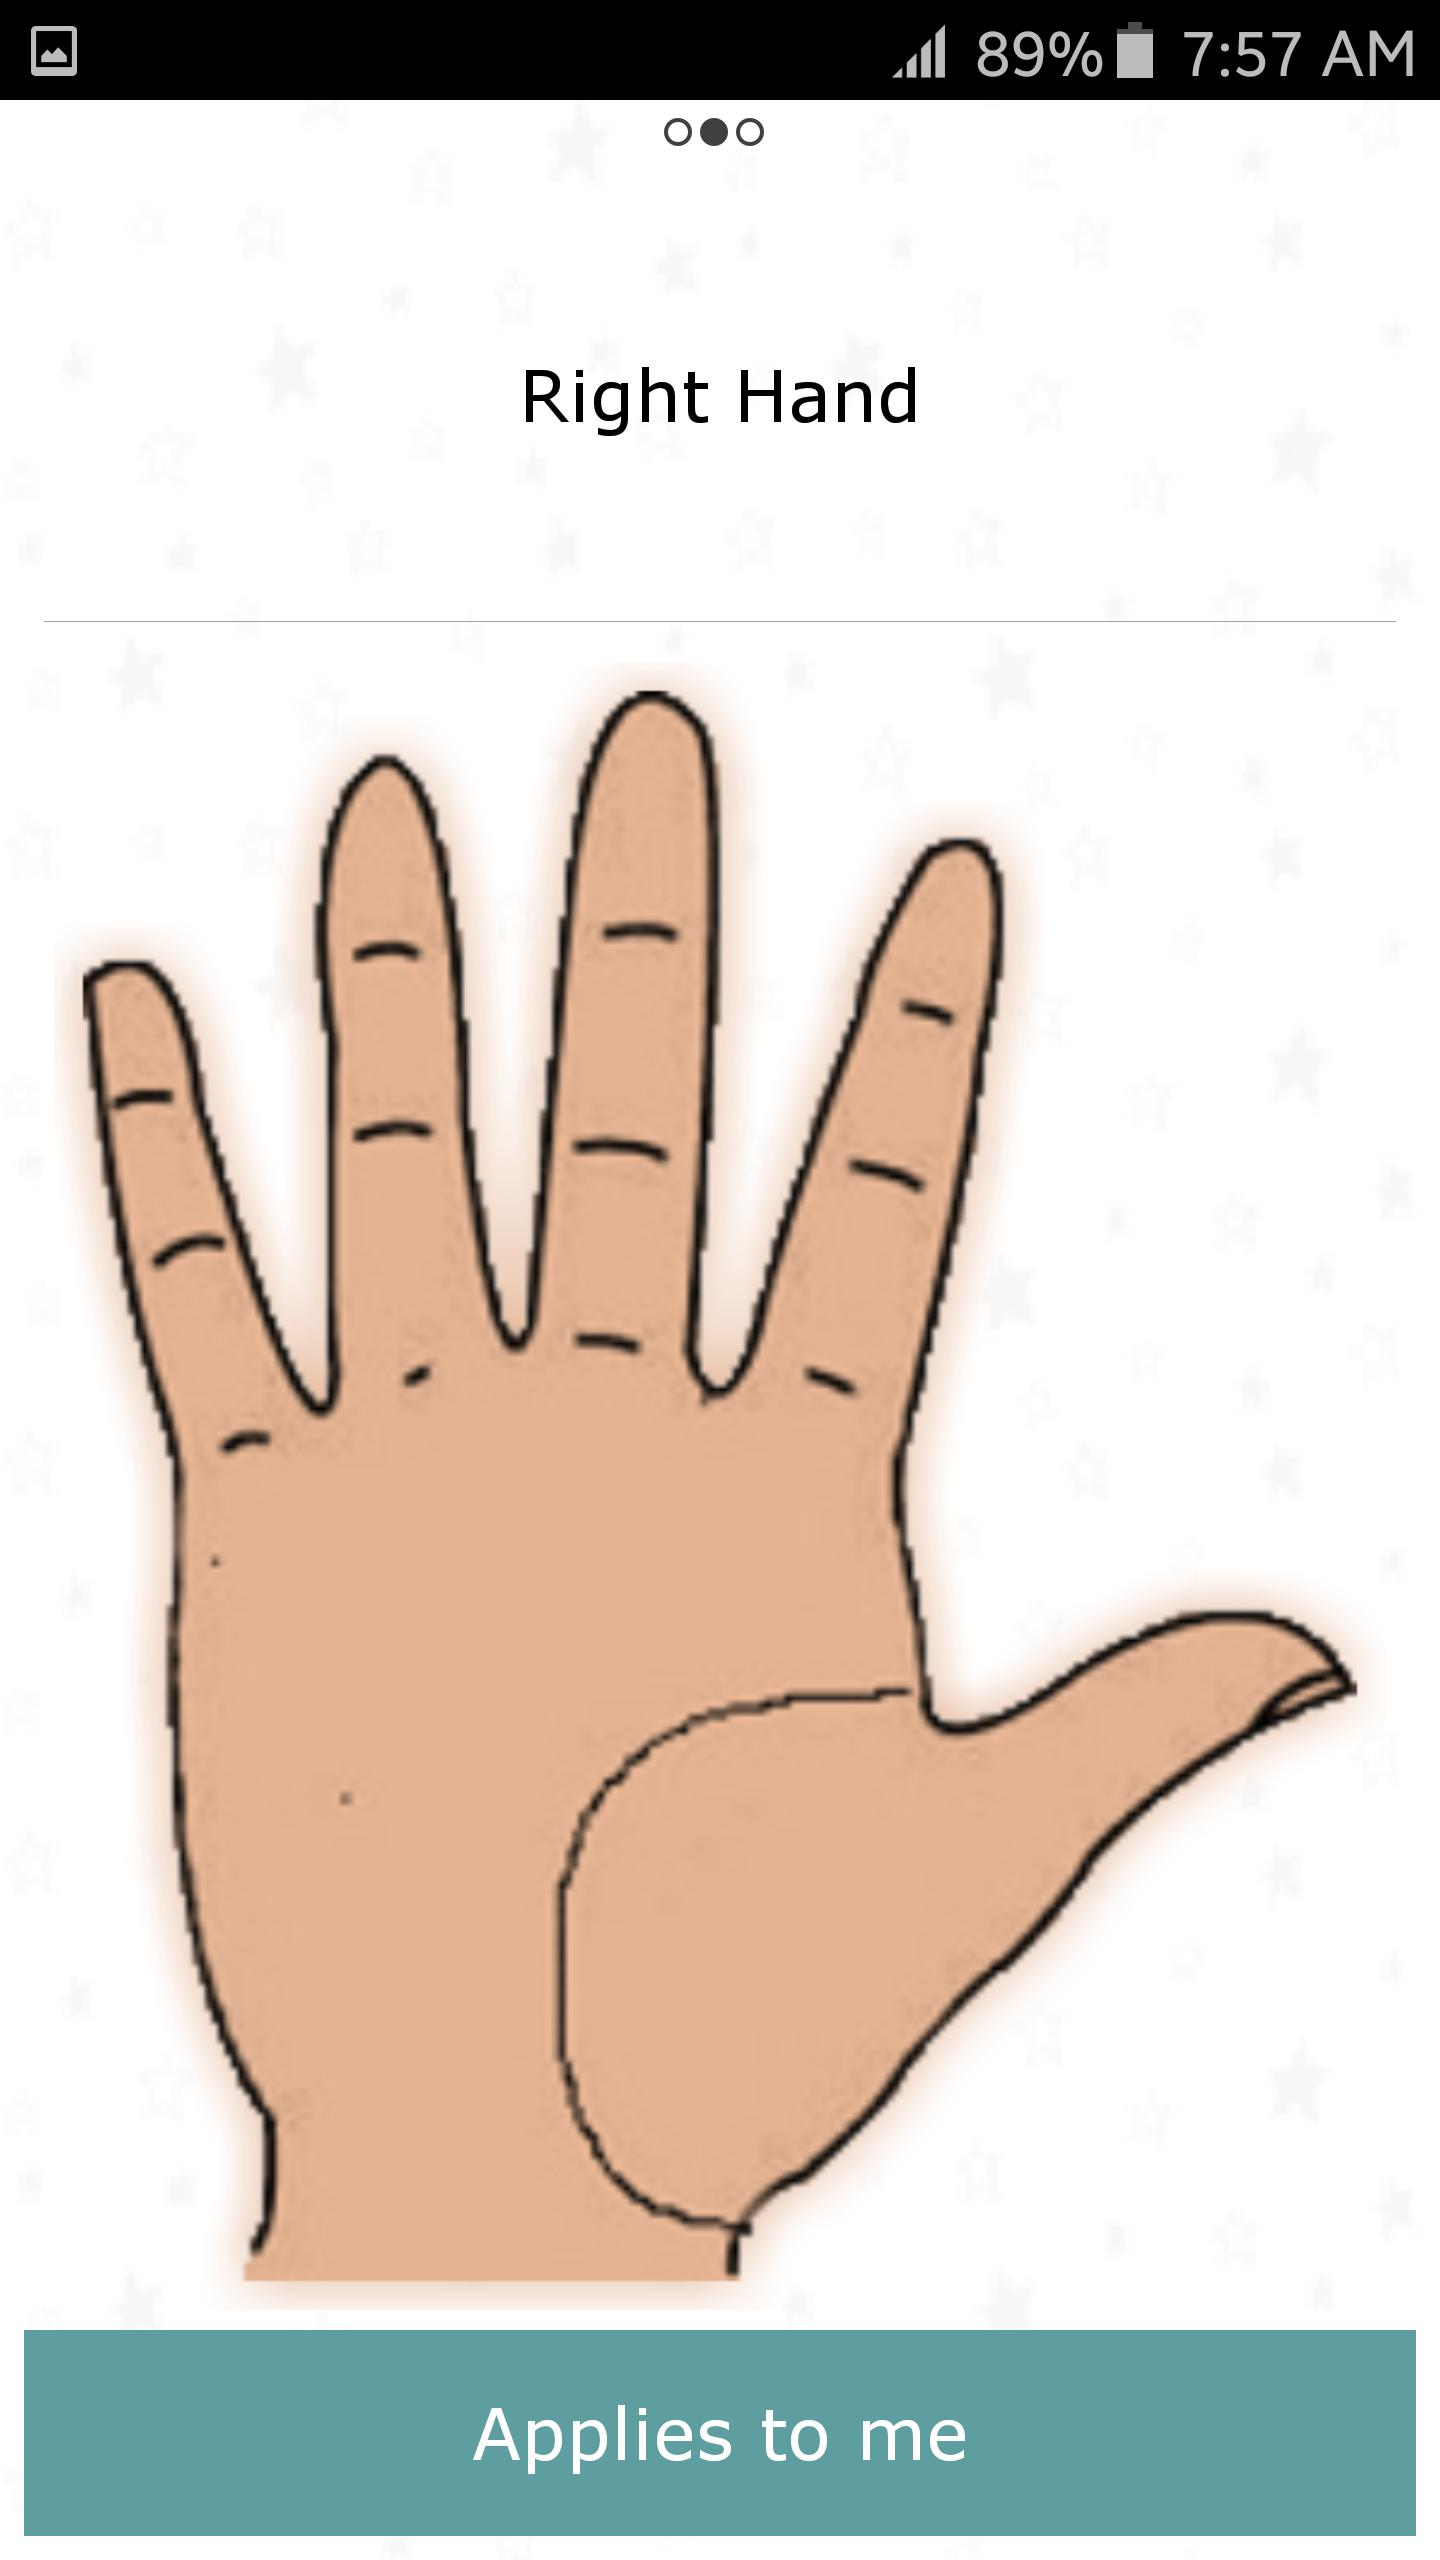 growing personal palm readings - HD1440×2560